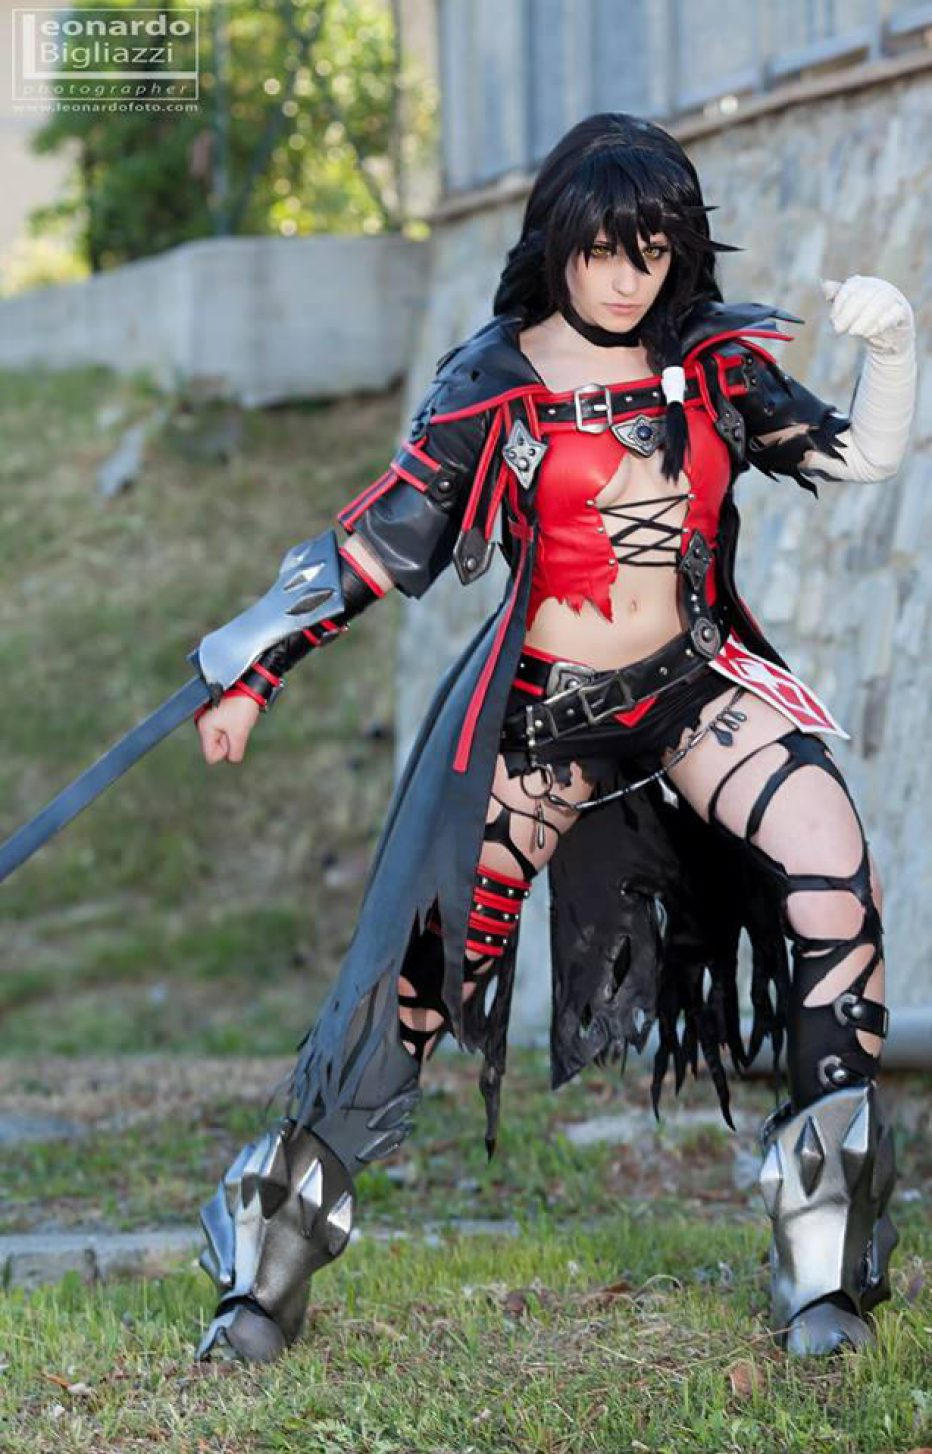 Velvet-Crowe-Tales-of-Berseria-Cosplay-Gamers-Heroes-11.jpg